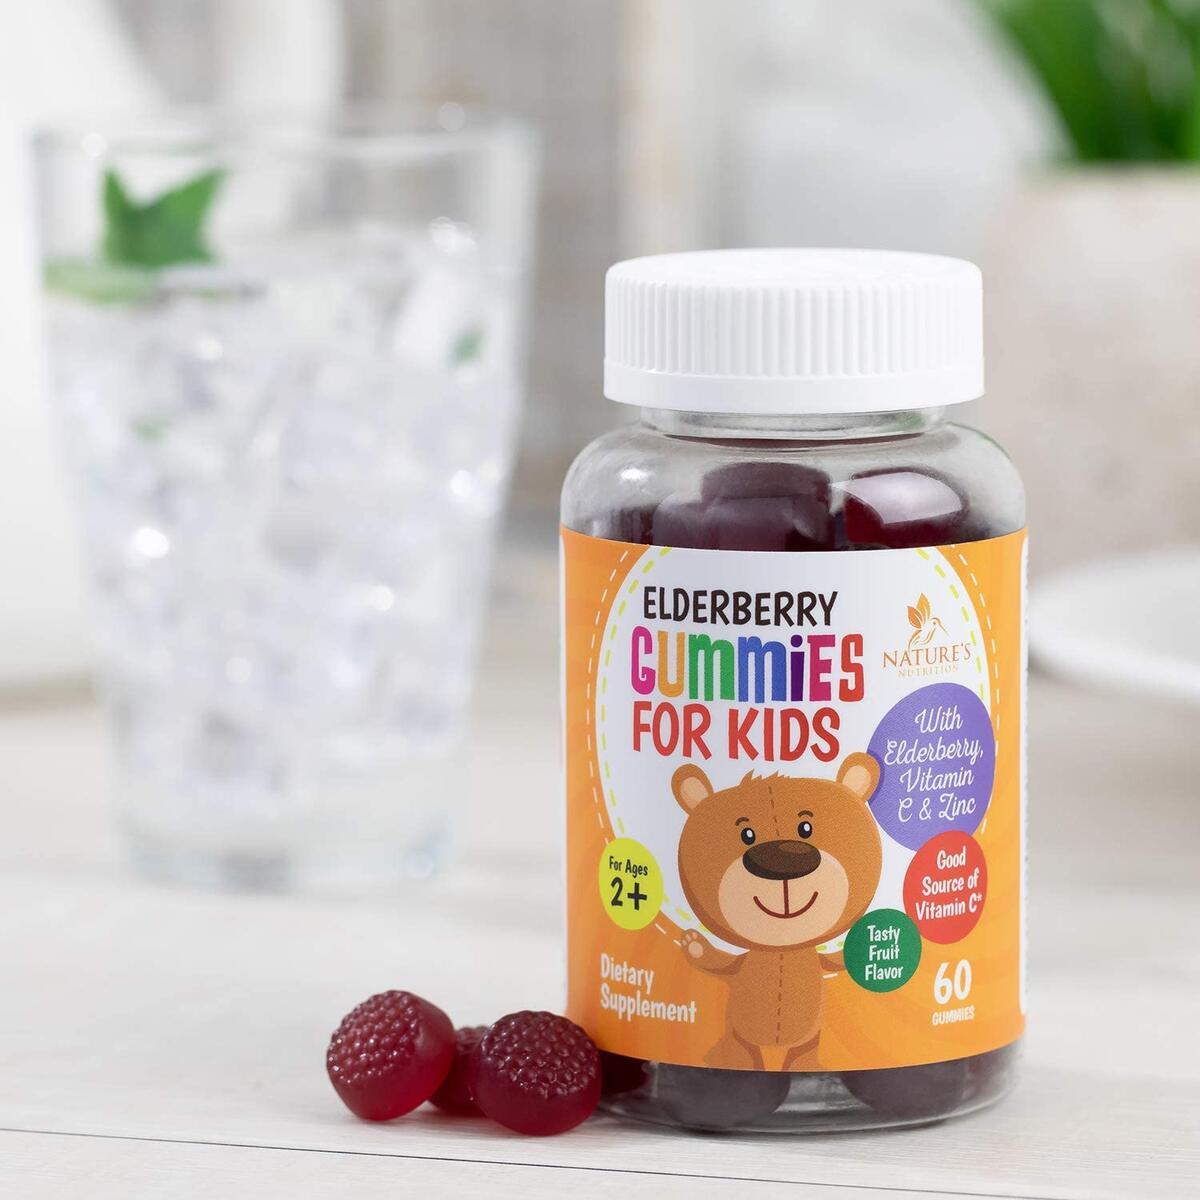 Elderberry Gummies for Kids Extra Strength Sambucus Nigra Gummy Vitamins - Tasty Natural Immune Support - Made in USA - Best Children's Herbal Supplements with Vitamin C and Zinc - 60 Gummies